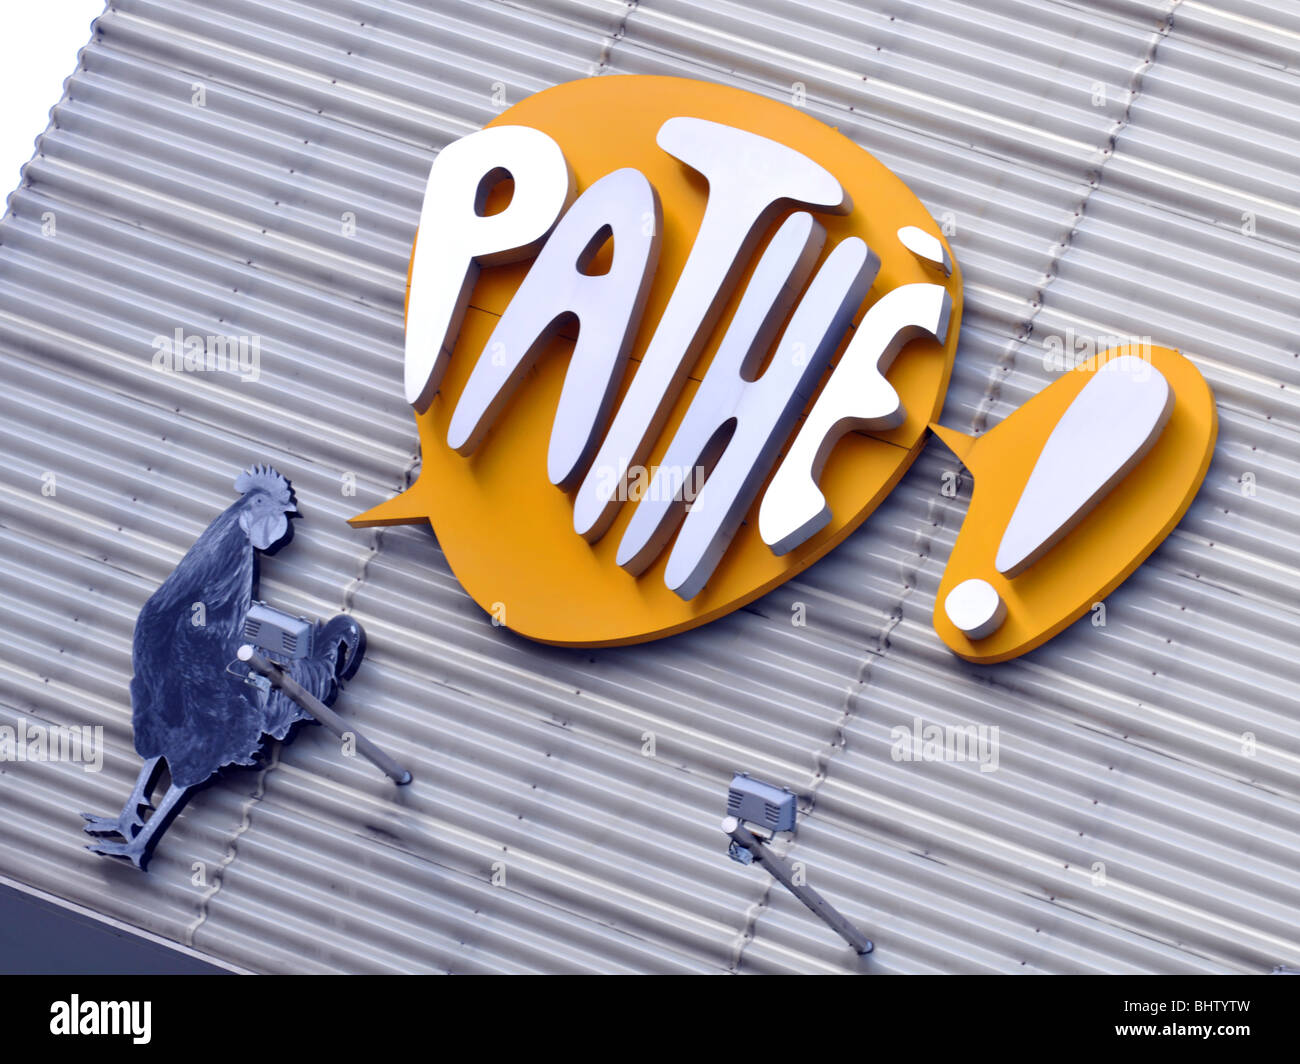 Pathe sign - Stock Image